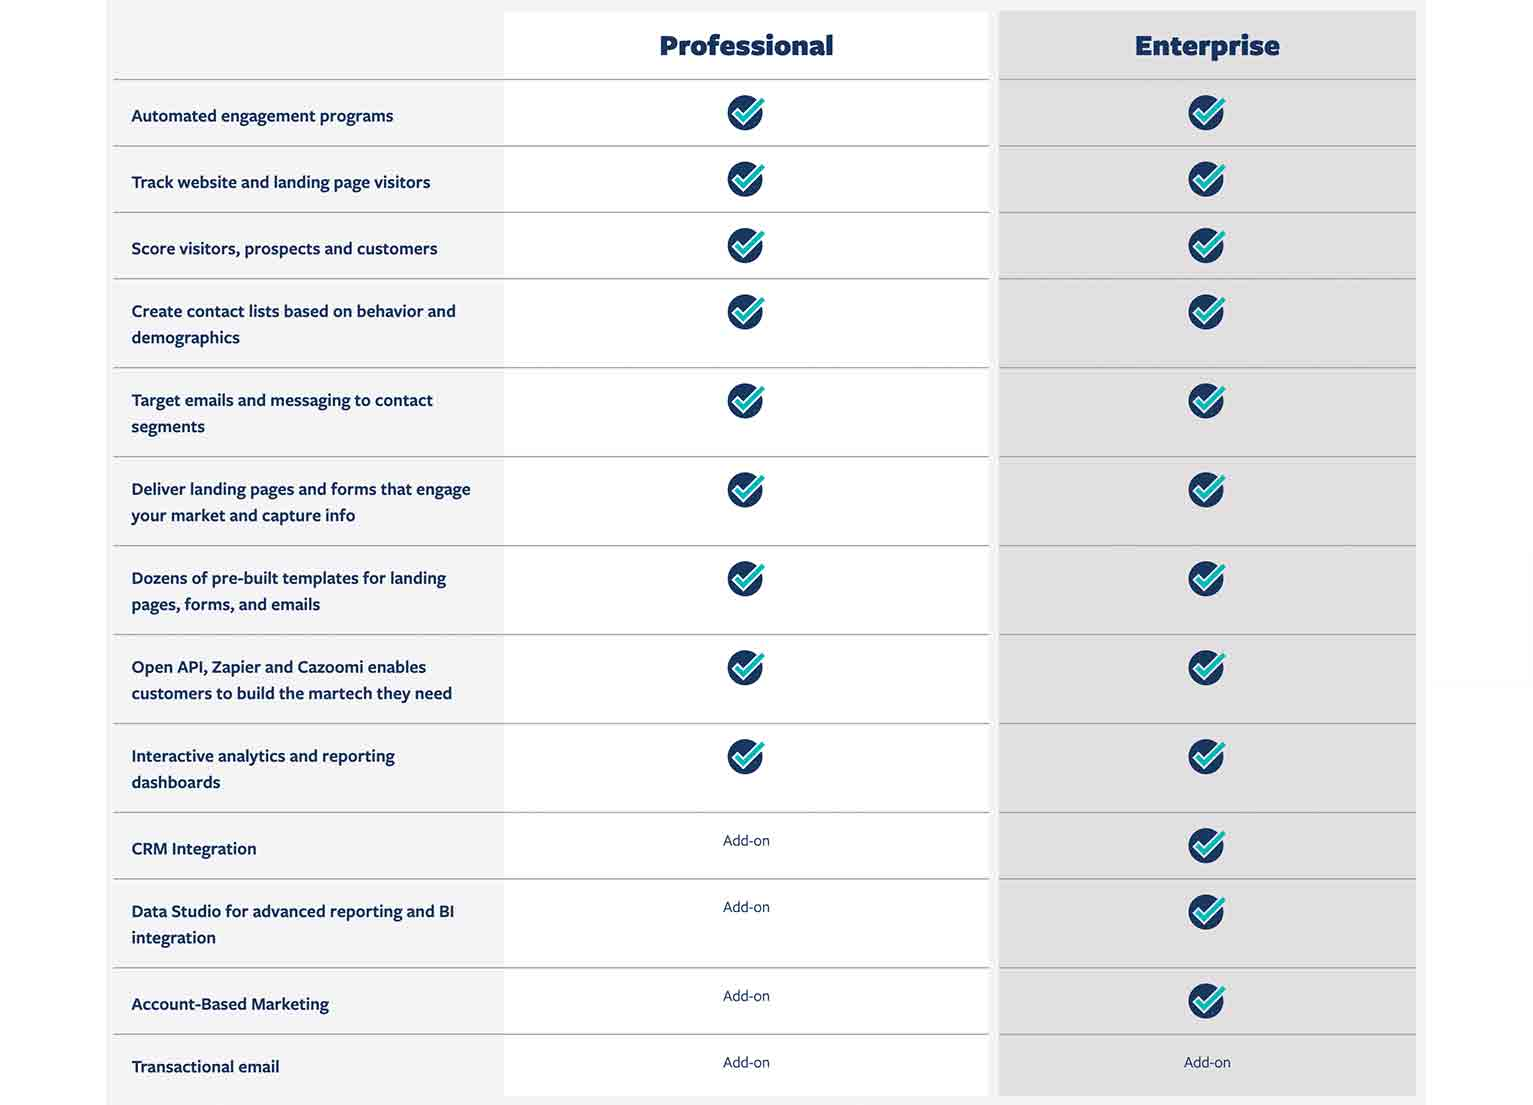 A 3-column table with the features of Act-On's Professional and Enterprise plans noted with checkmarks.